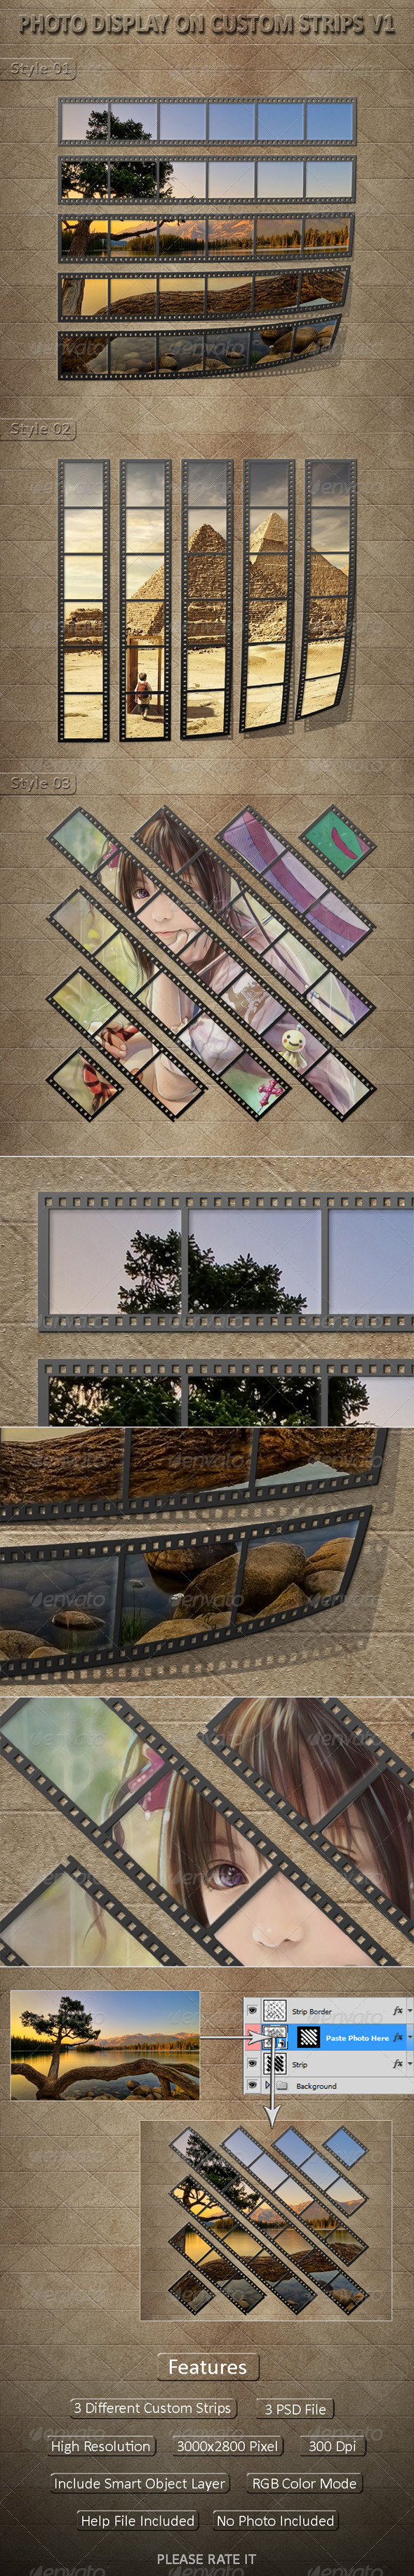 Photo Display on Custom Strips V1 - Photo Templates Graphics